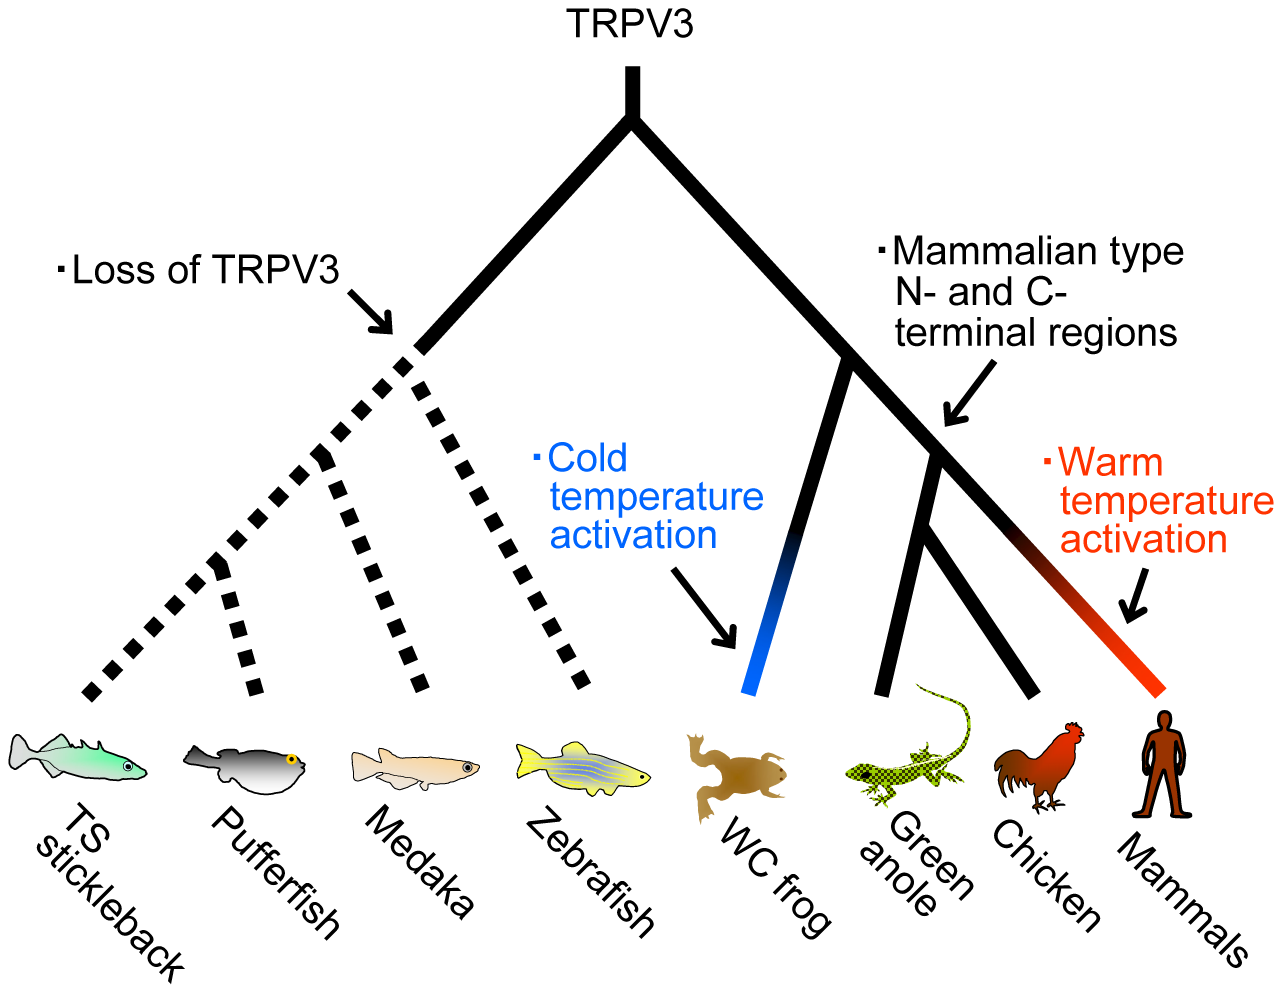 The evolutionary changes of TRPV3 channels in the vertebrate lineages.